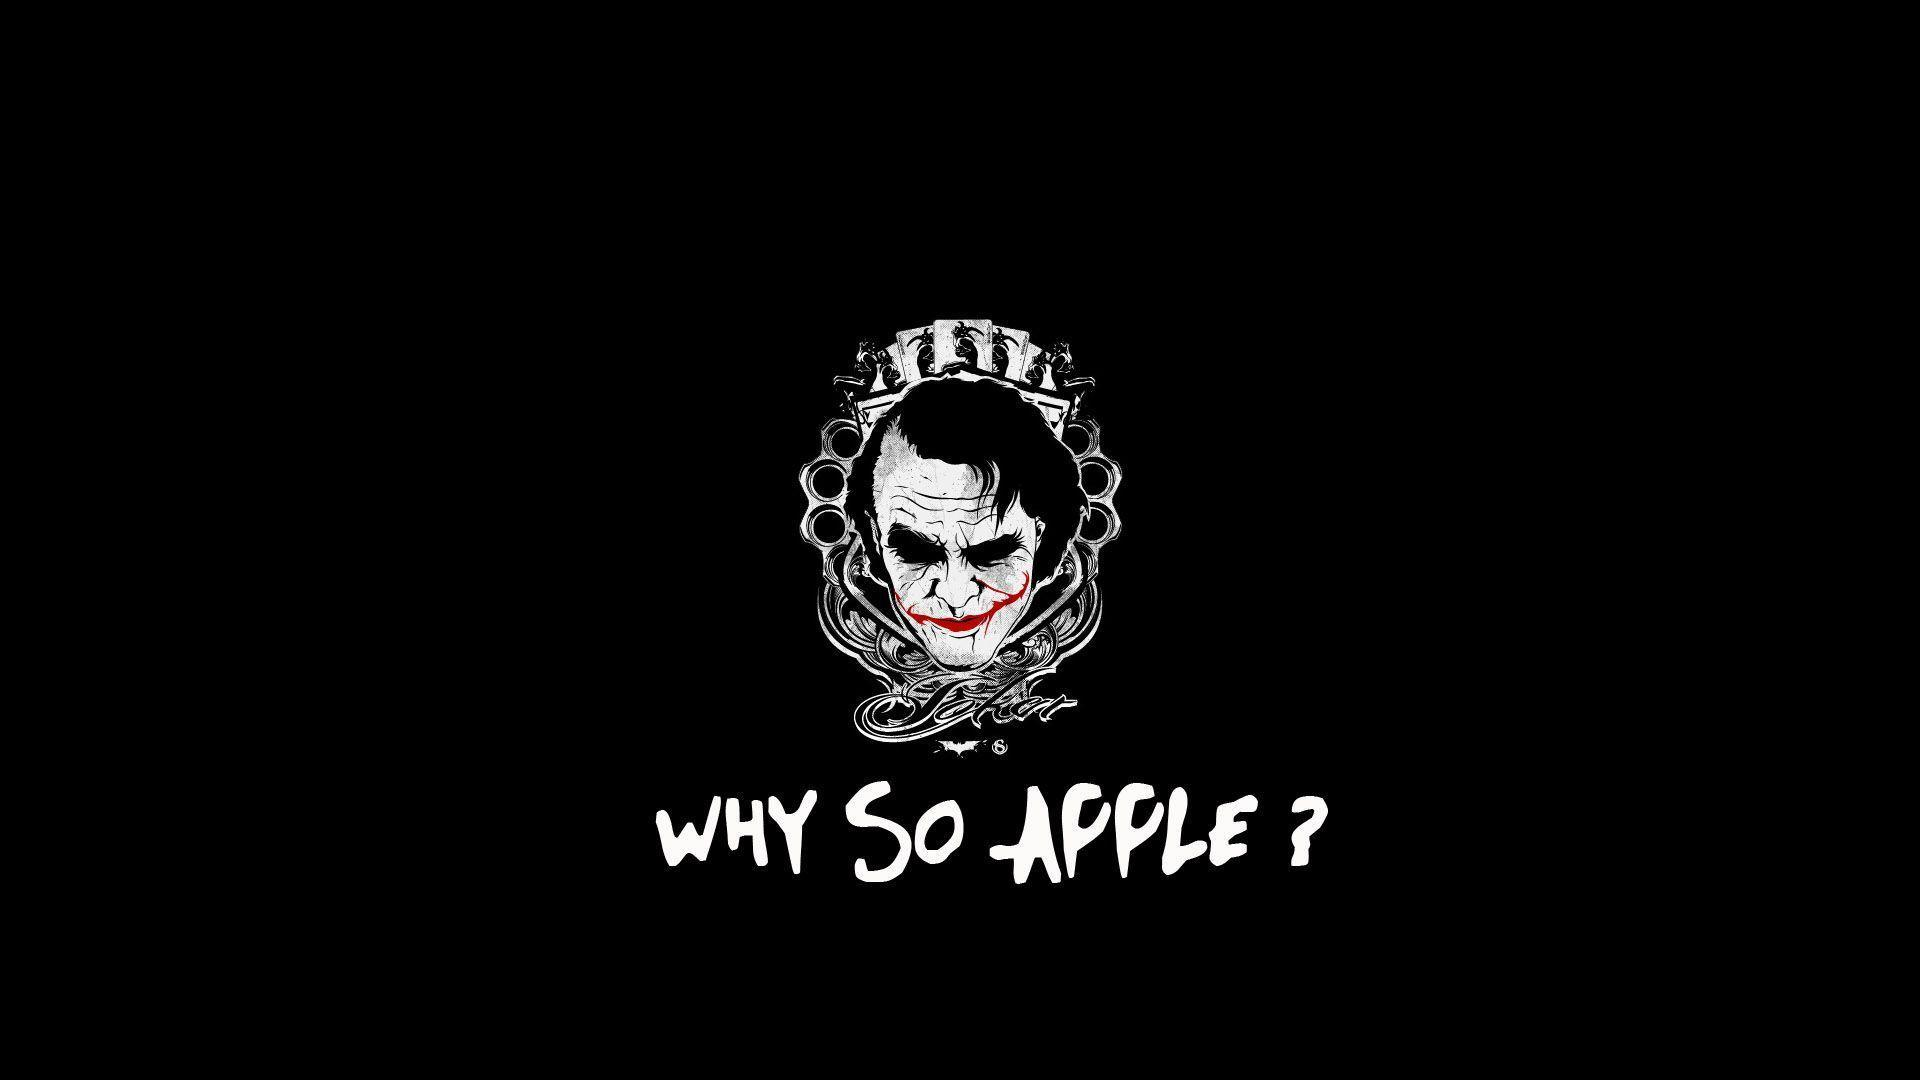 Atheist Iphone Wallpaper Funny Wallpaper Backgrounds Wallpaper Cave